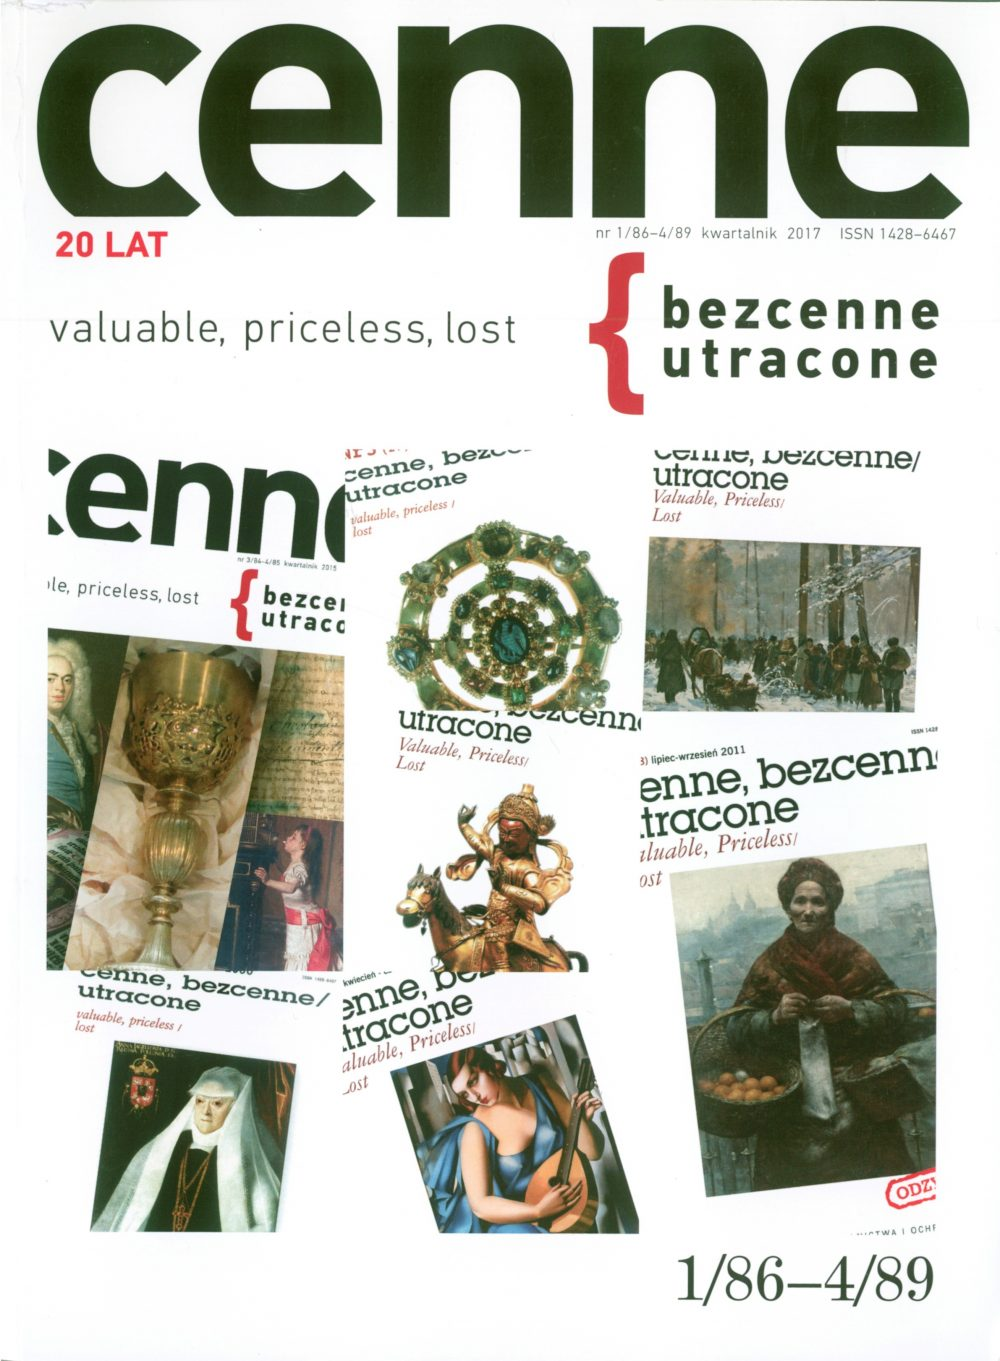 Cenne, bezcenne / utracone, 2017, Nr 1/86-4/89 Book Cover